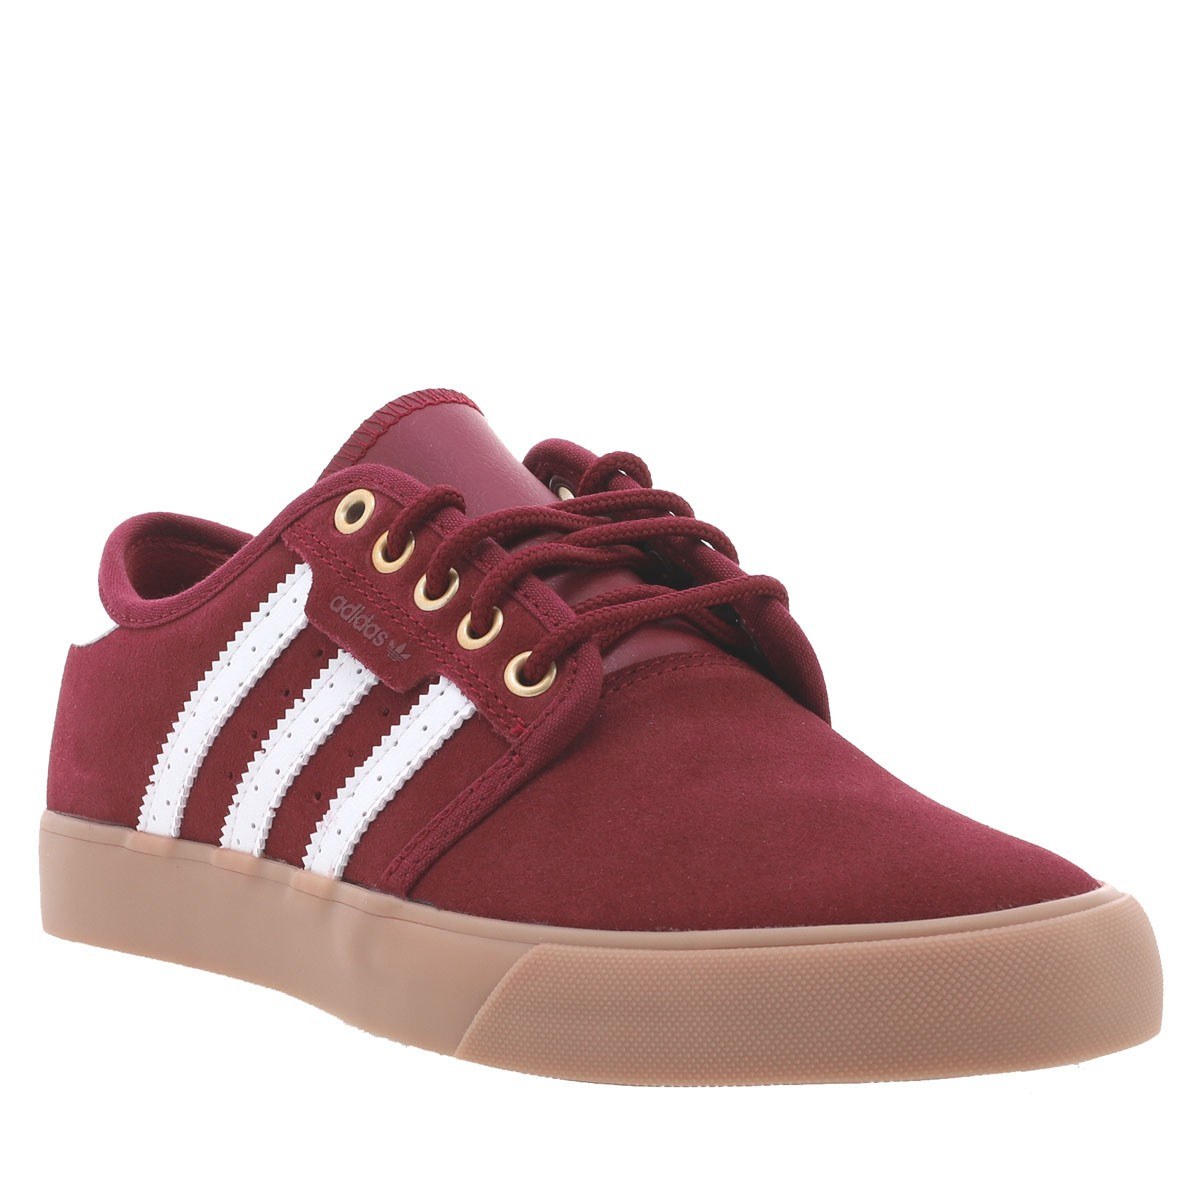 1010d40a4a349 Baskets Seeley homme rouge Adidas- CCV Mode